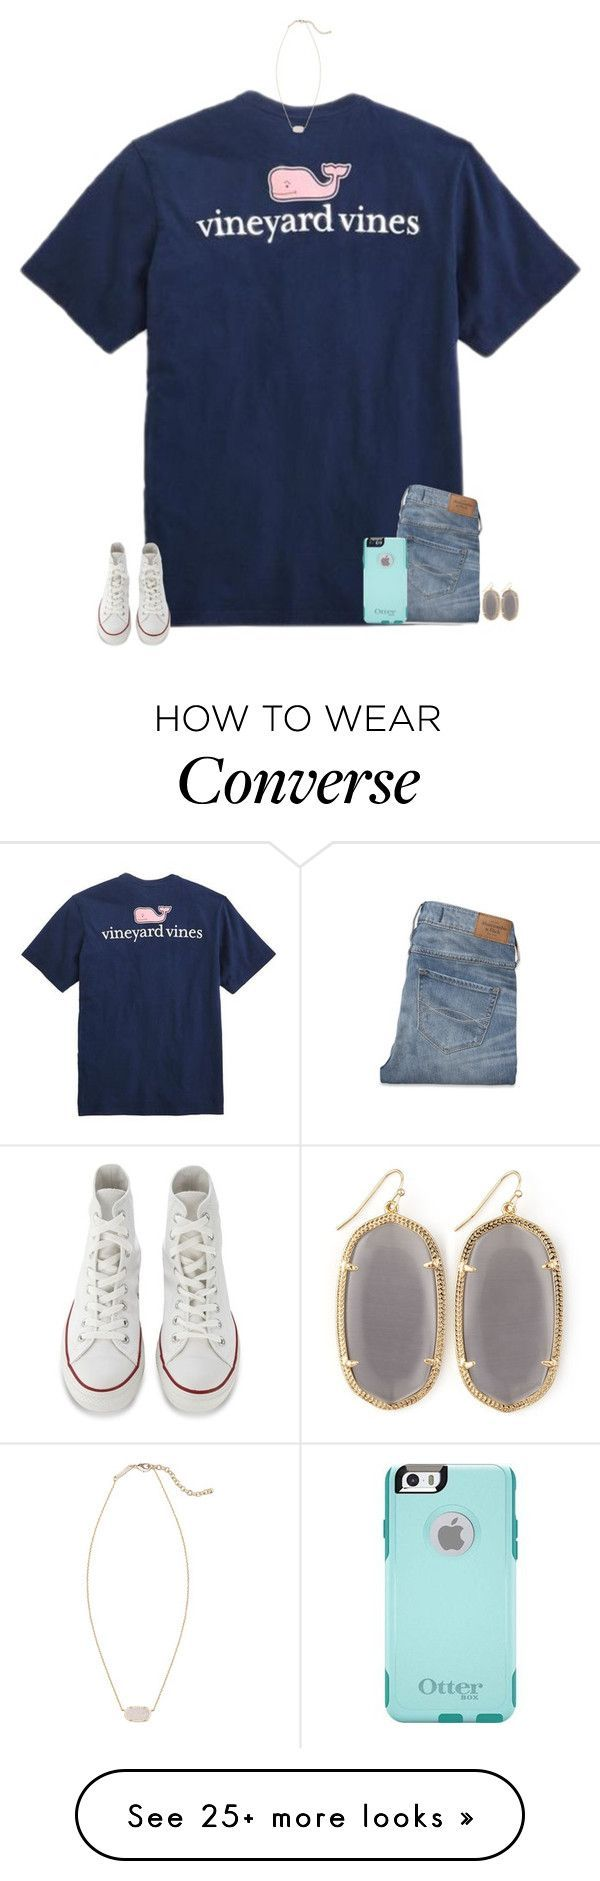 """""""TAYLORS NEW VIDEO IN 3 MINUTES"""" by secfashion13 on Polyvore featuring Mode, Vineyard Vines, Converse, Abercrombie & Fitch, OtterBox und Kendra Scott"""